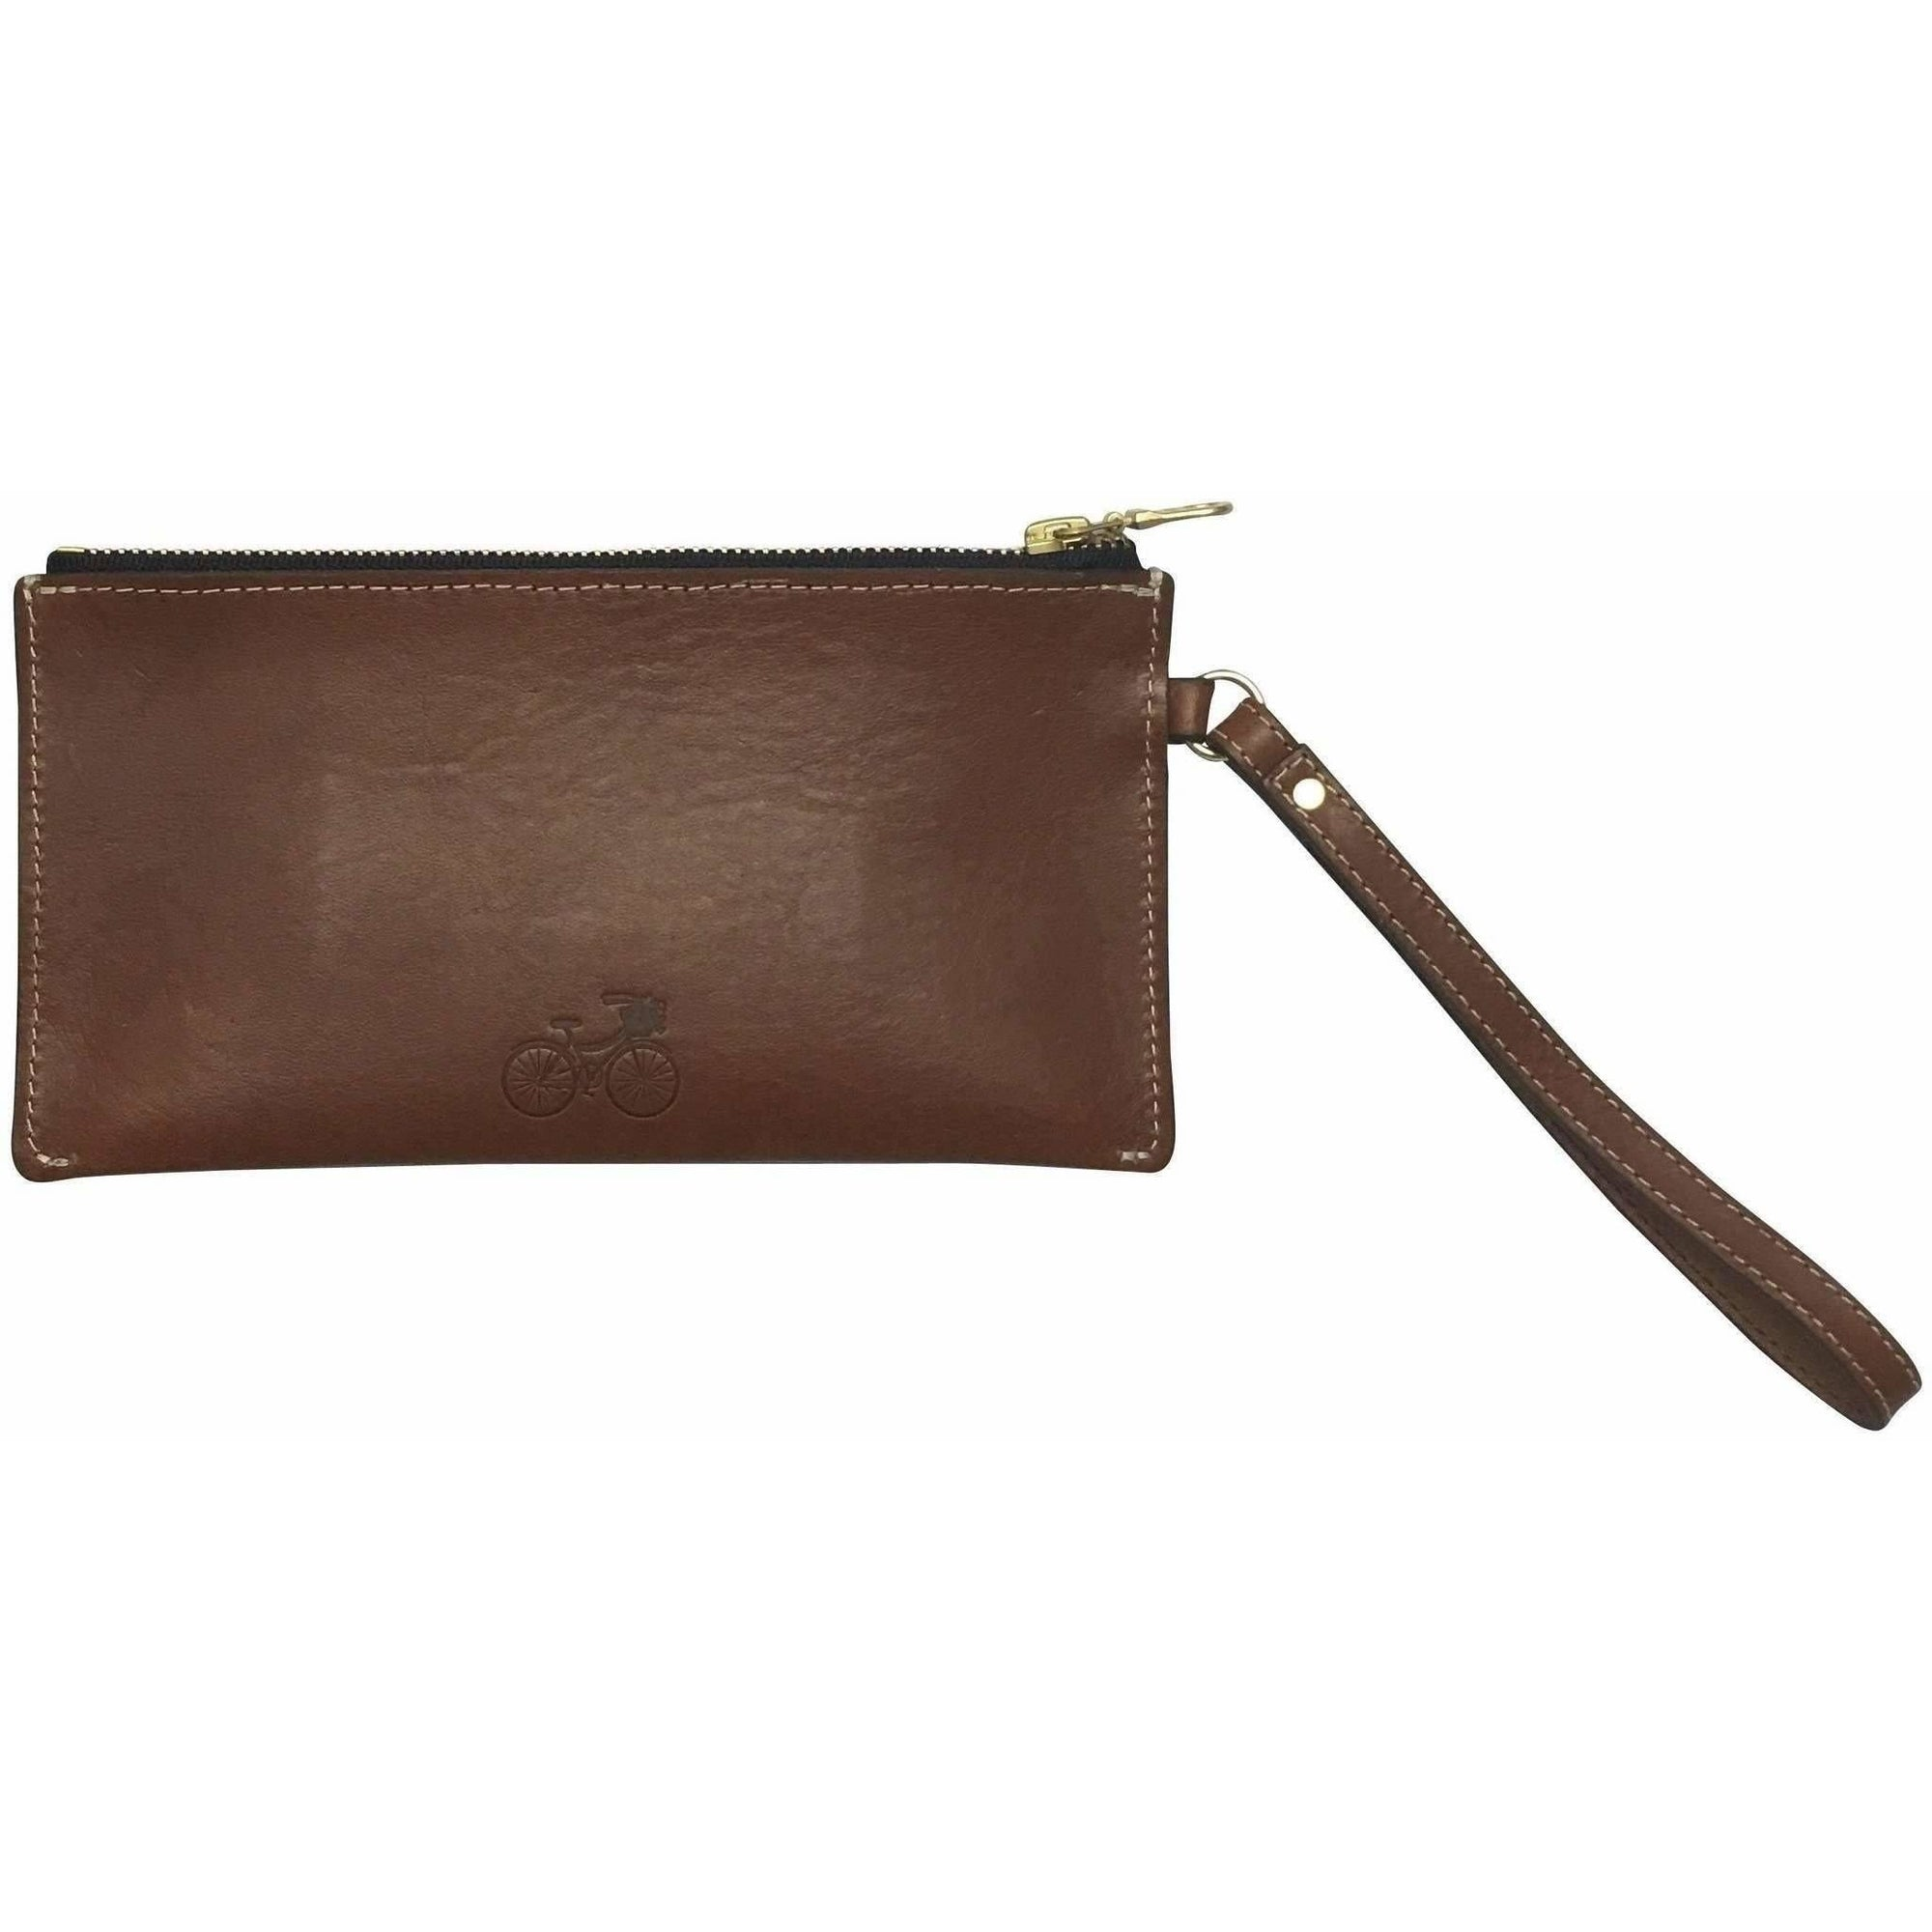 Women's Leather Clutch / Wristlet - Made in the US!! - Adorable Essentials